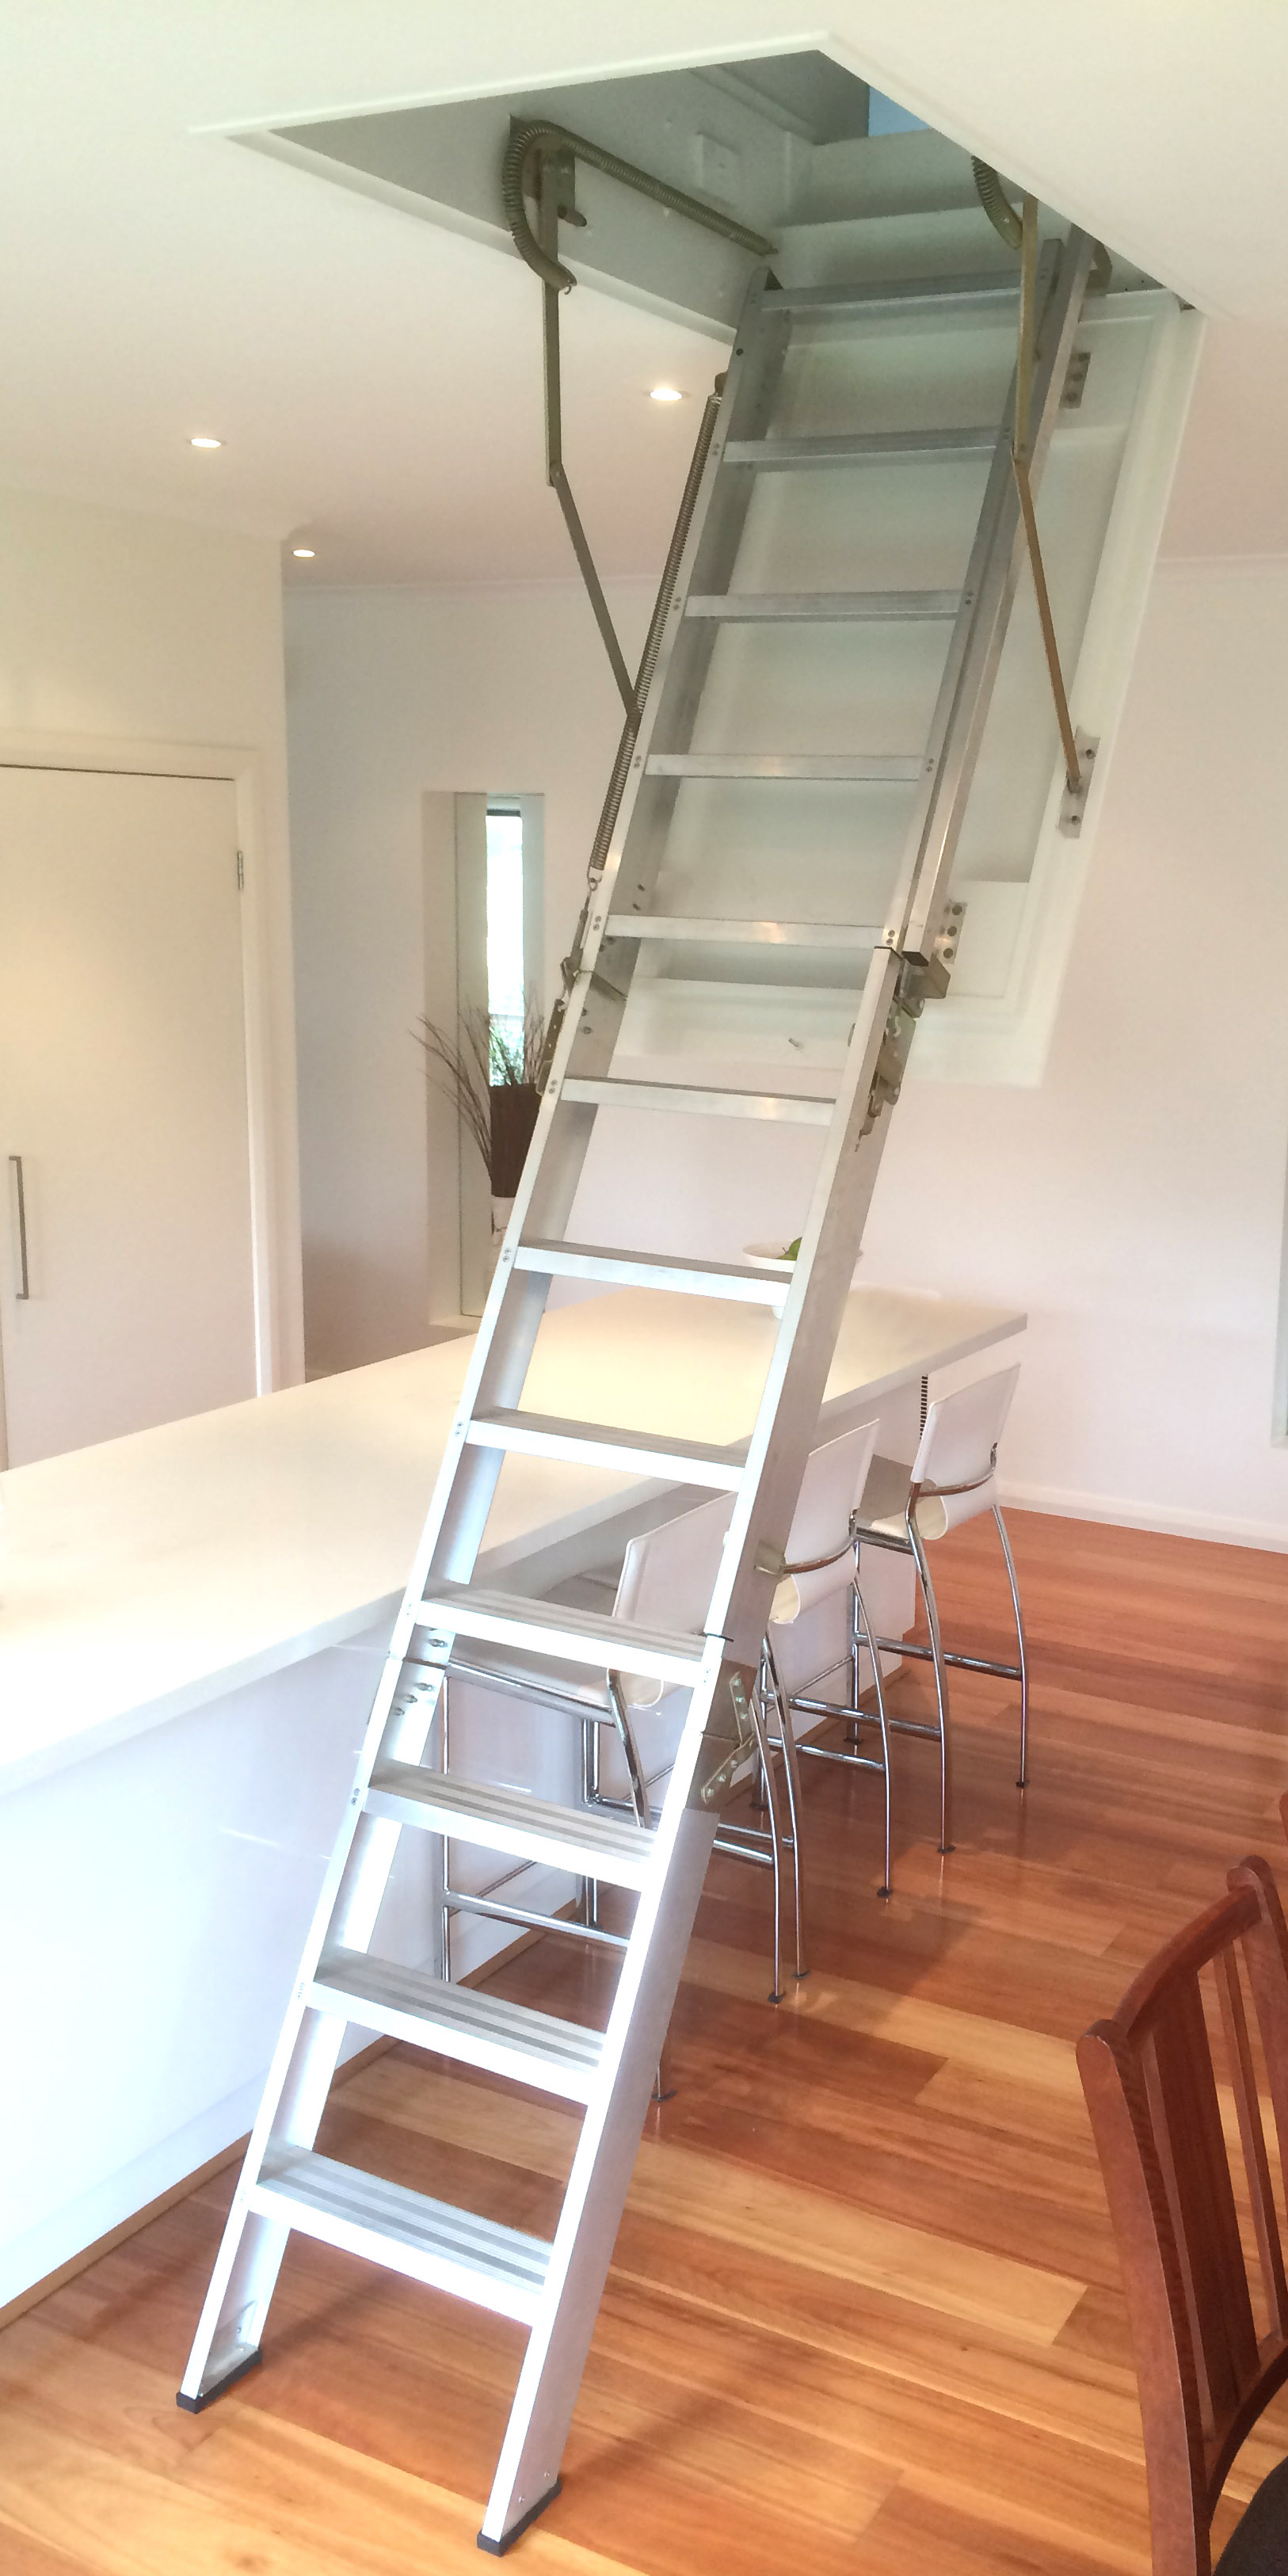 Furniture Aluminium Kitchen Attic Access Stairs With Attic Access Within  Proportions 1626 X 3252